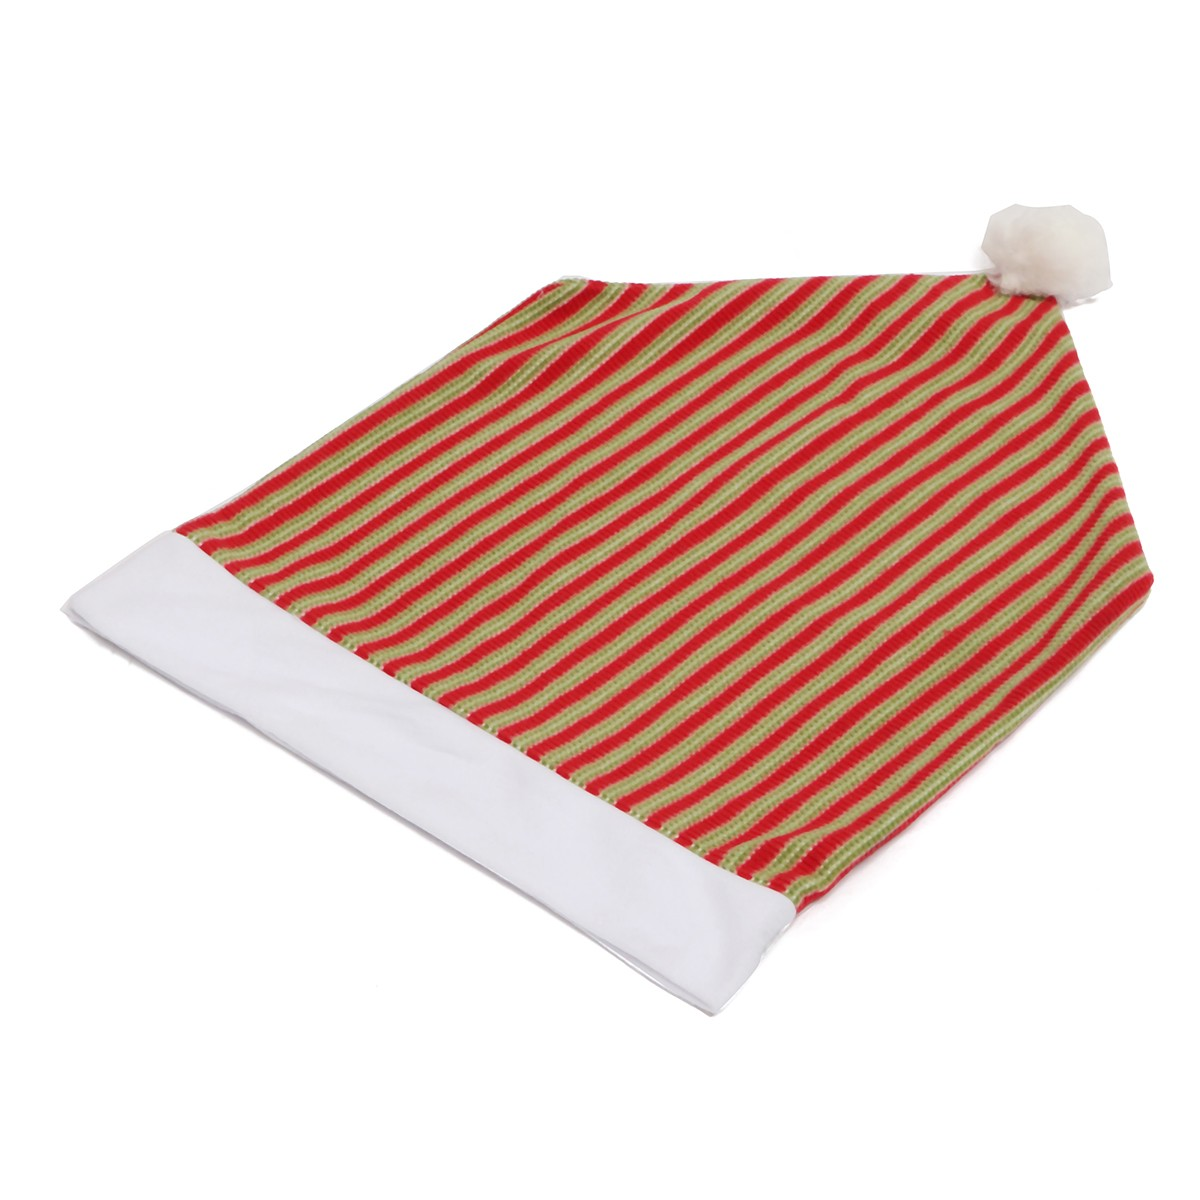 245c1a627a49e Christmas Stripe Santa Hat Chair Back Cover Xmas Party Dinner Table  Decoration